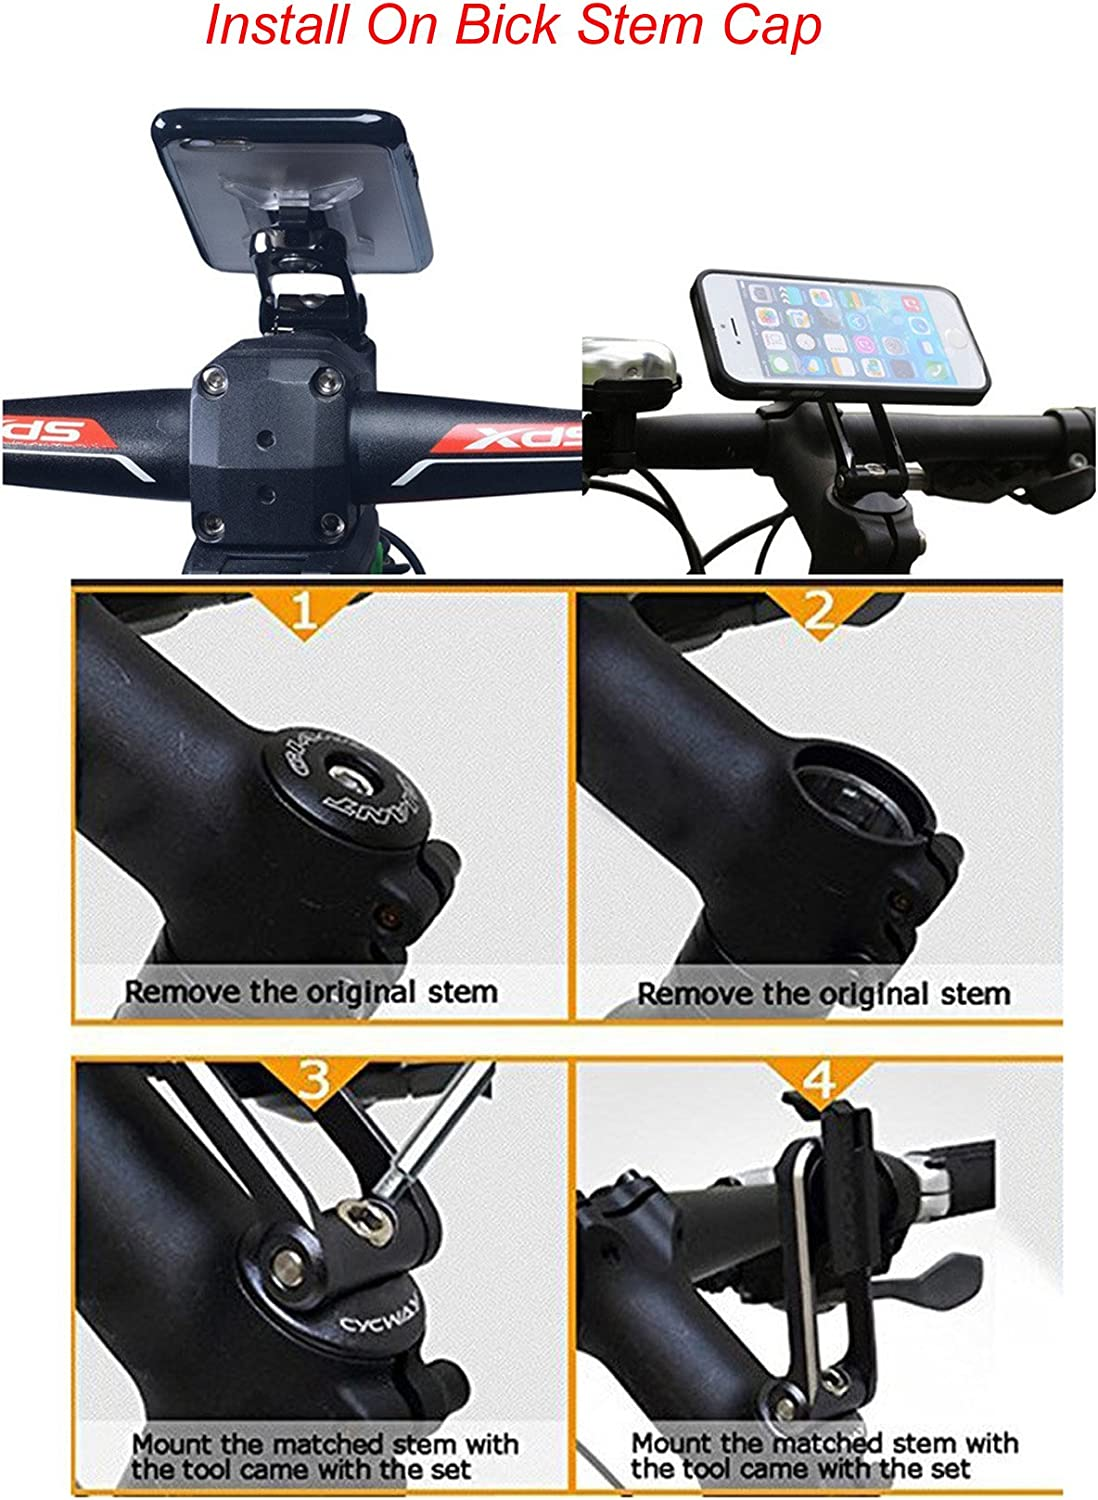 2017 Version 4.7 2016 iPhone 7 /& iPhone 8 Bike Phone Mount with Riding Case,Mountain Bike,Bicycle Stemcap Cell Phone Holder Cradle with Riding Cycling Case for Apple iPhone 7 /& iPhone 8